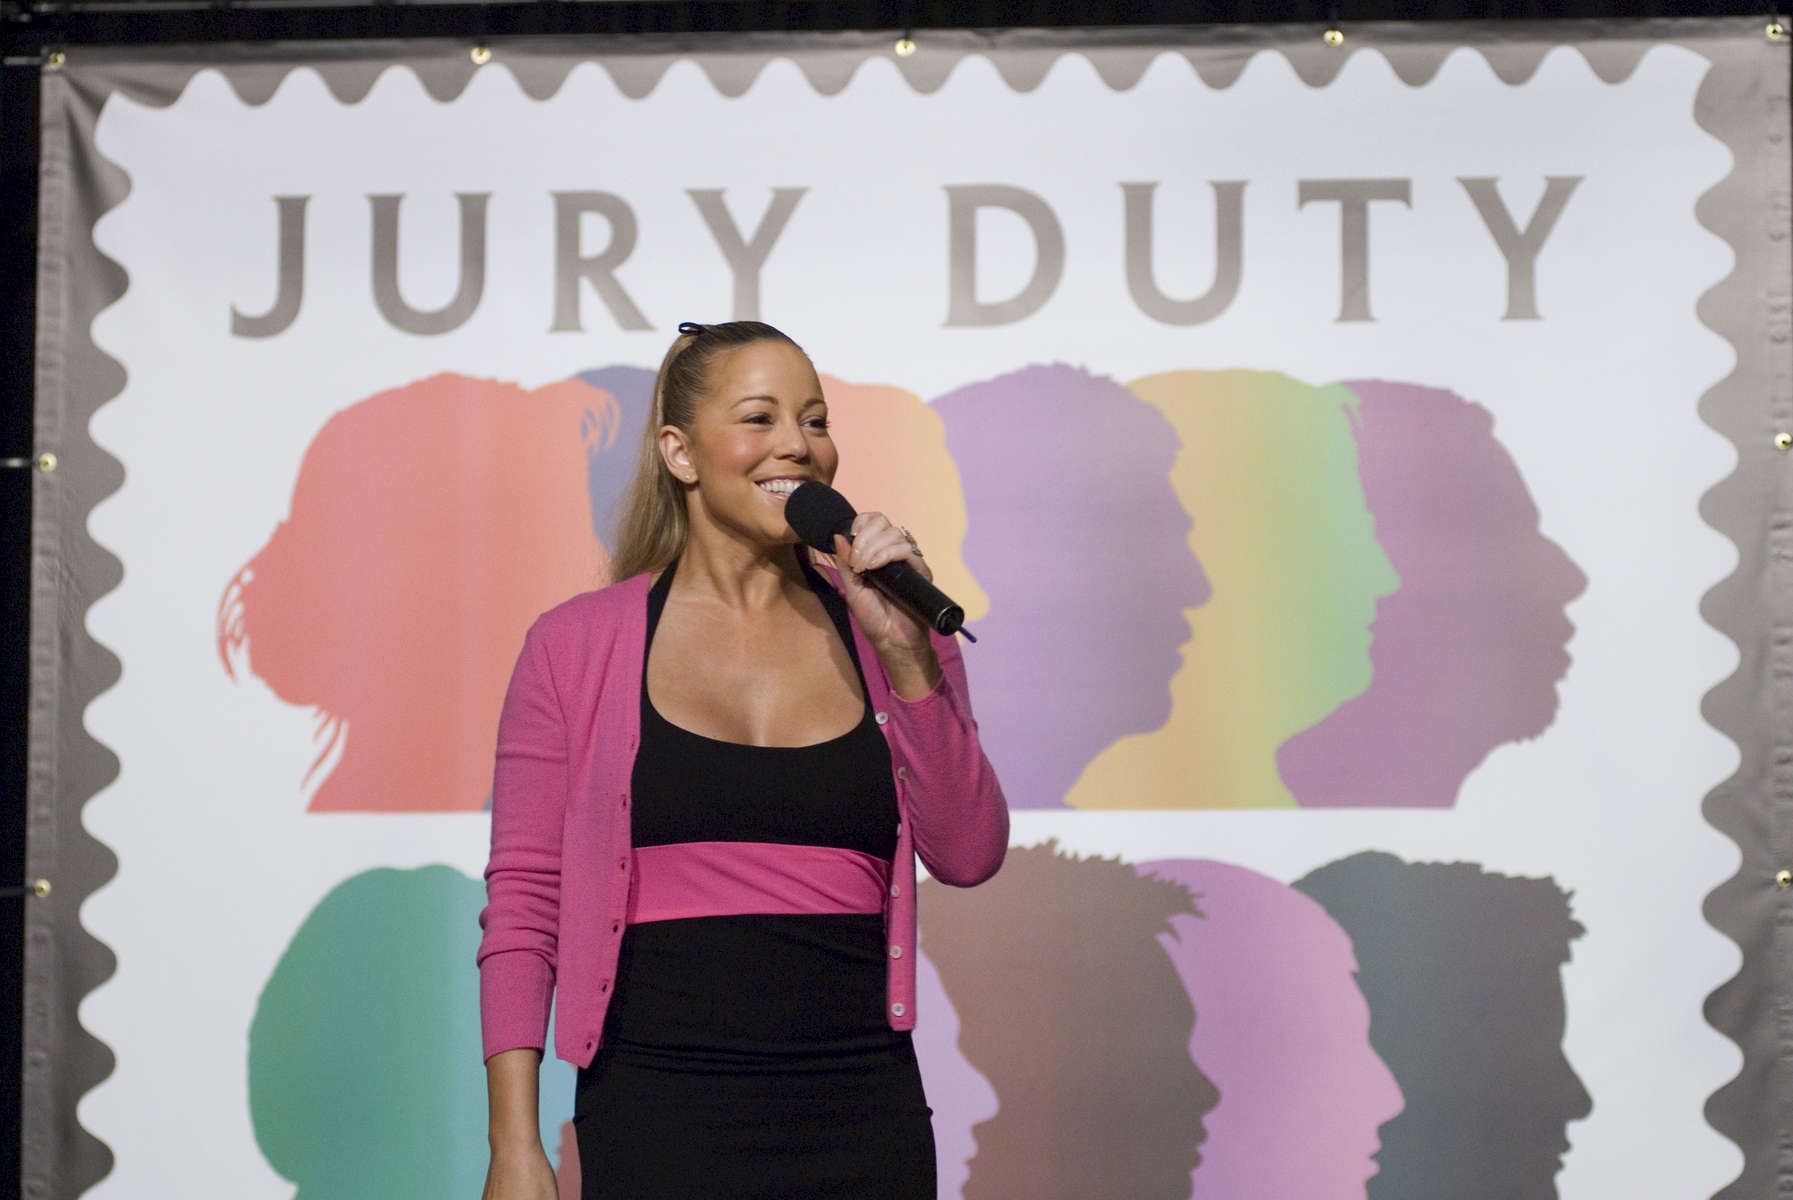 Singer Mariah Carey helped dedicate a USPS stamp on Jury Duty, Rotunda,  State Supreme Court, 60 Centre Street - September, 2007